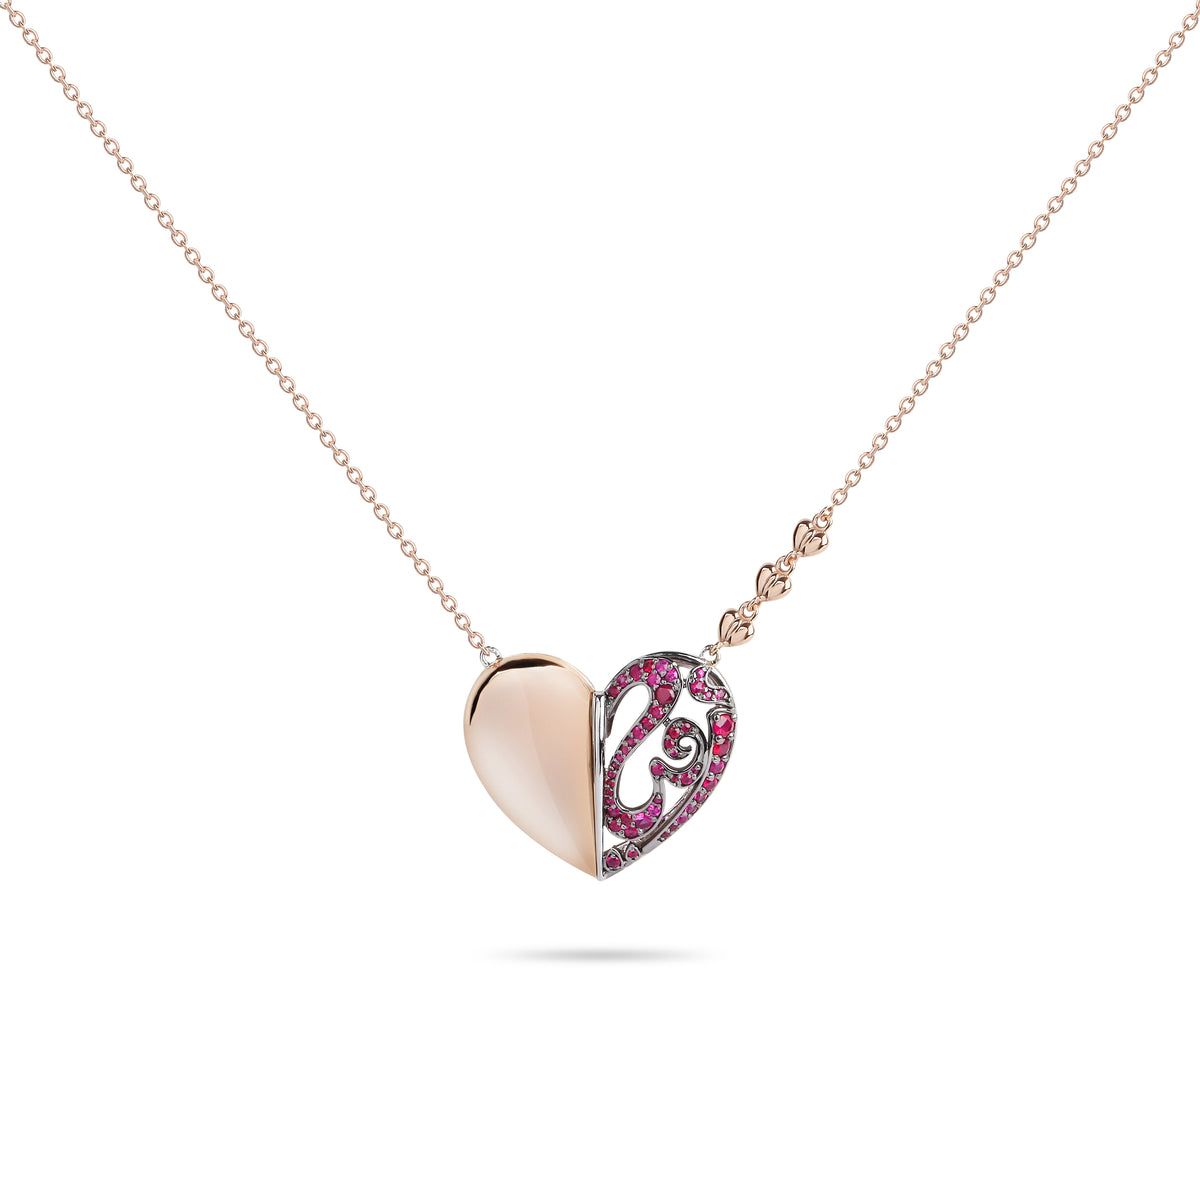 Necklaces with diamonds in UAE | Online jewelry UAE